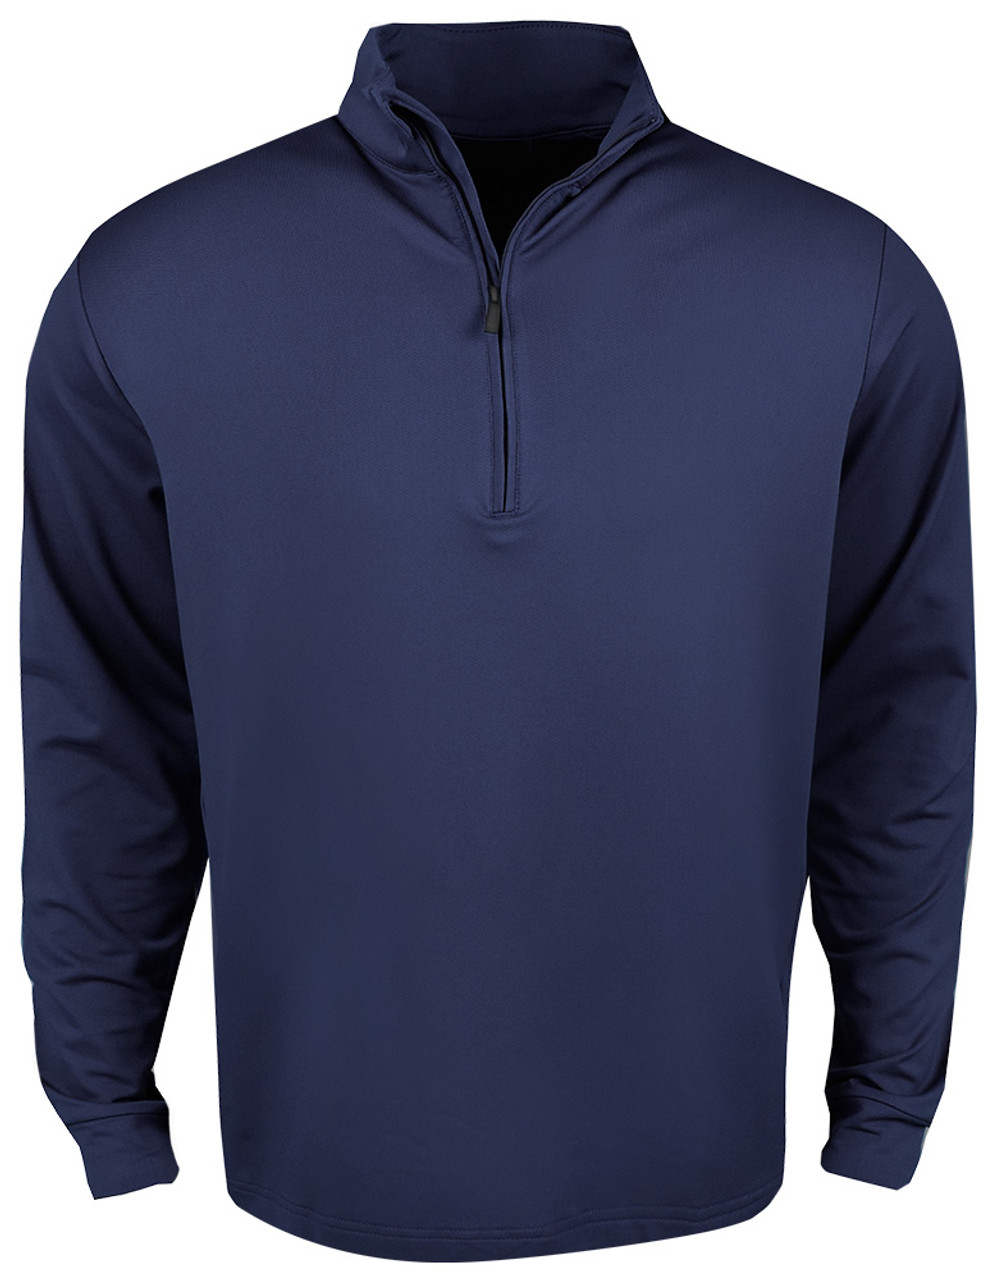 Callaway Swing Tech Cooling 1 4 Zip Pullover Rockbottomgolf Com